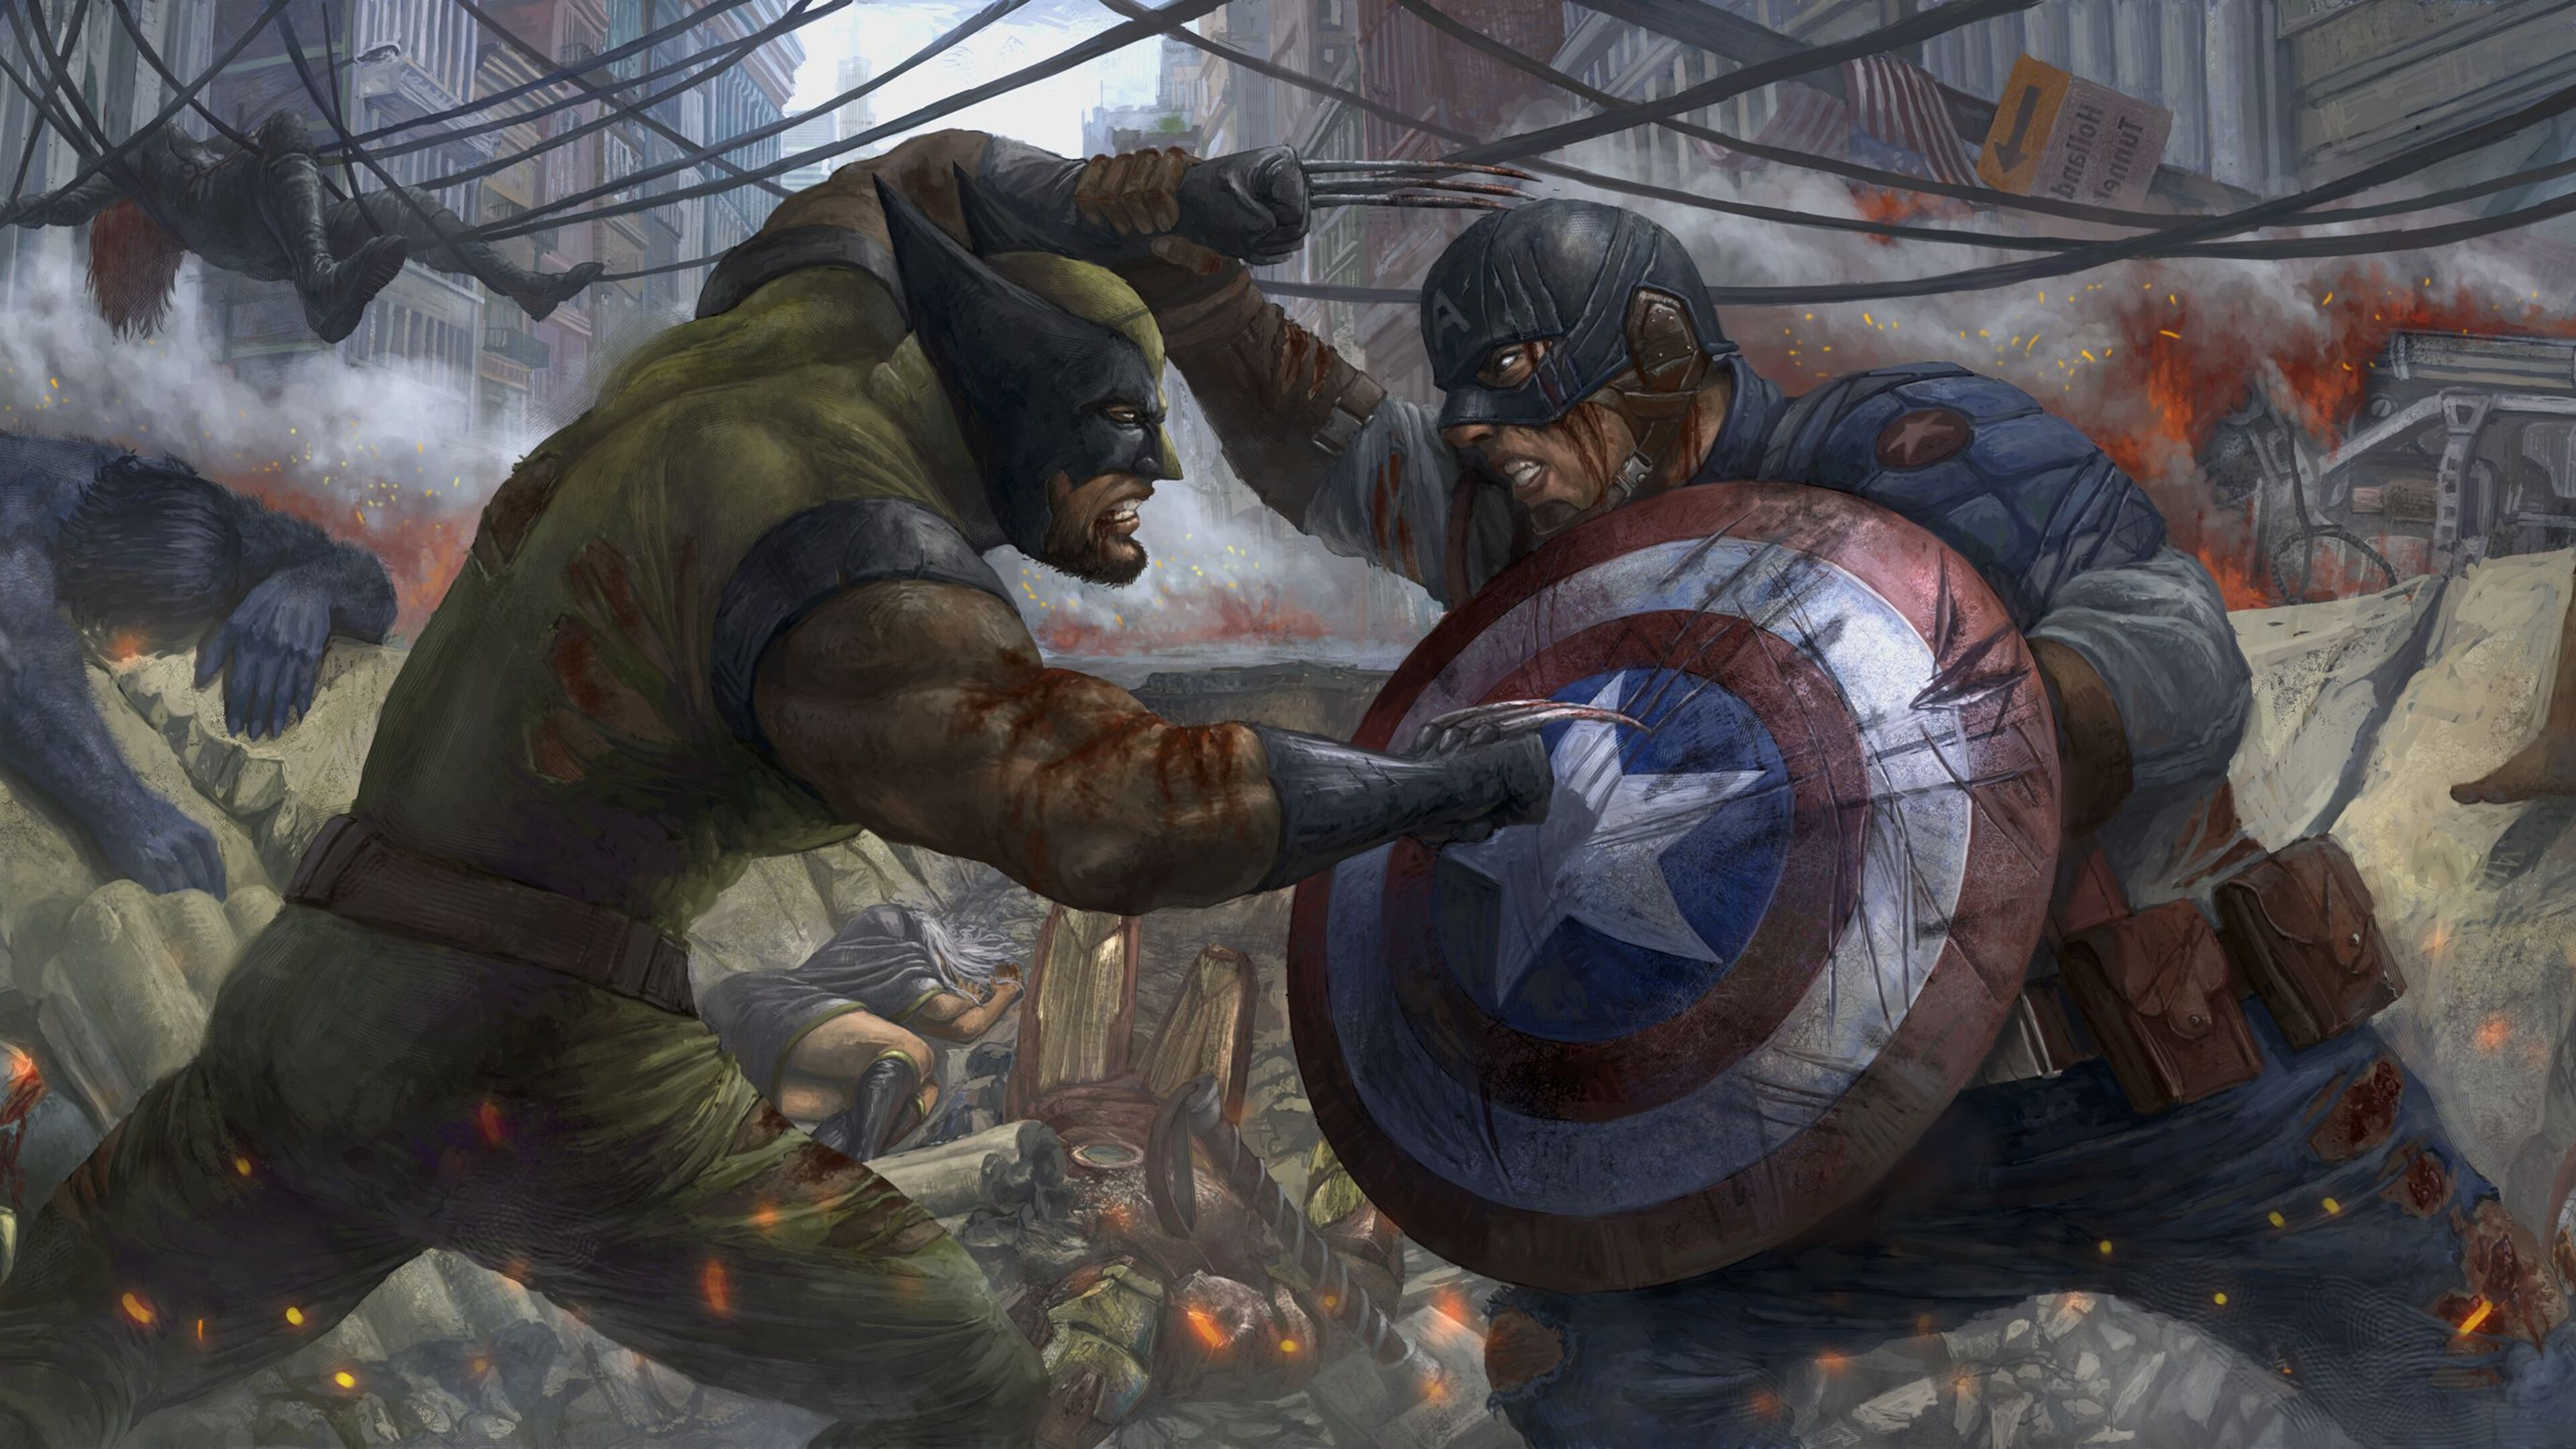 3840x2160 Captain America Vs Wolverine 4k Hd 4k Wallpapers Images